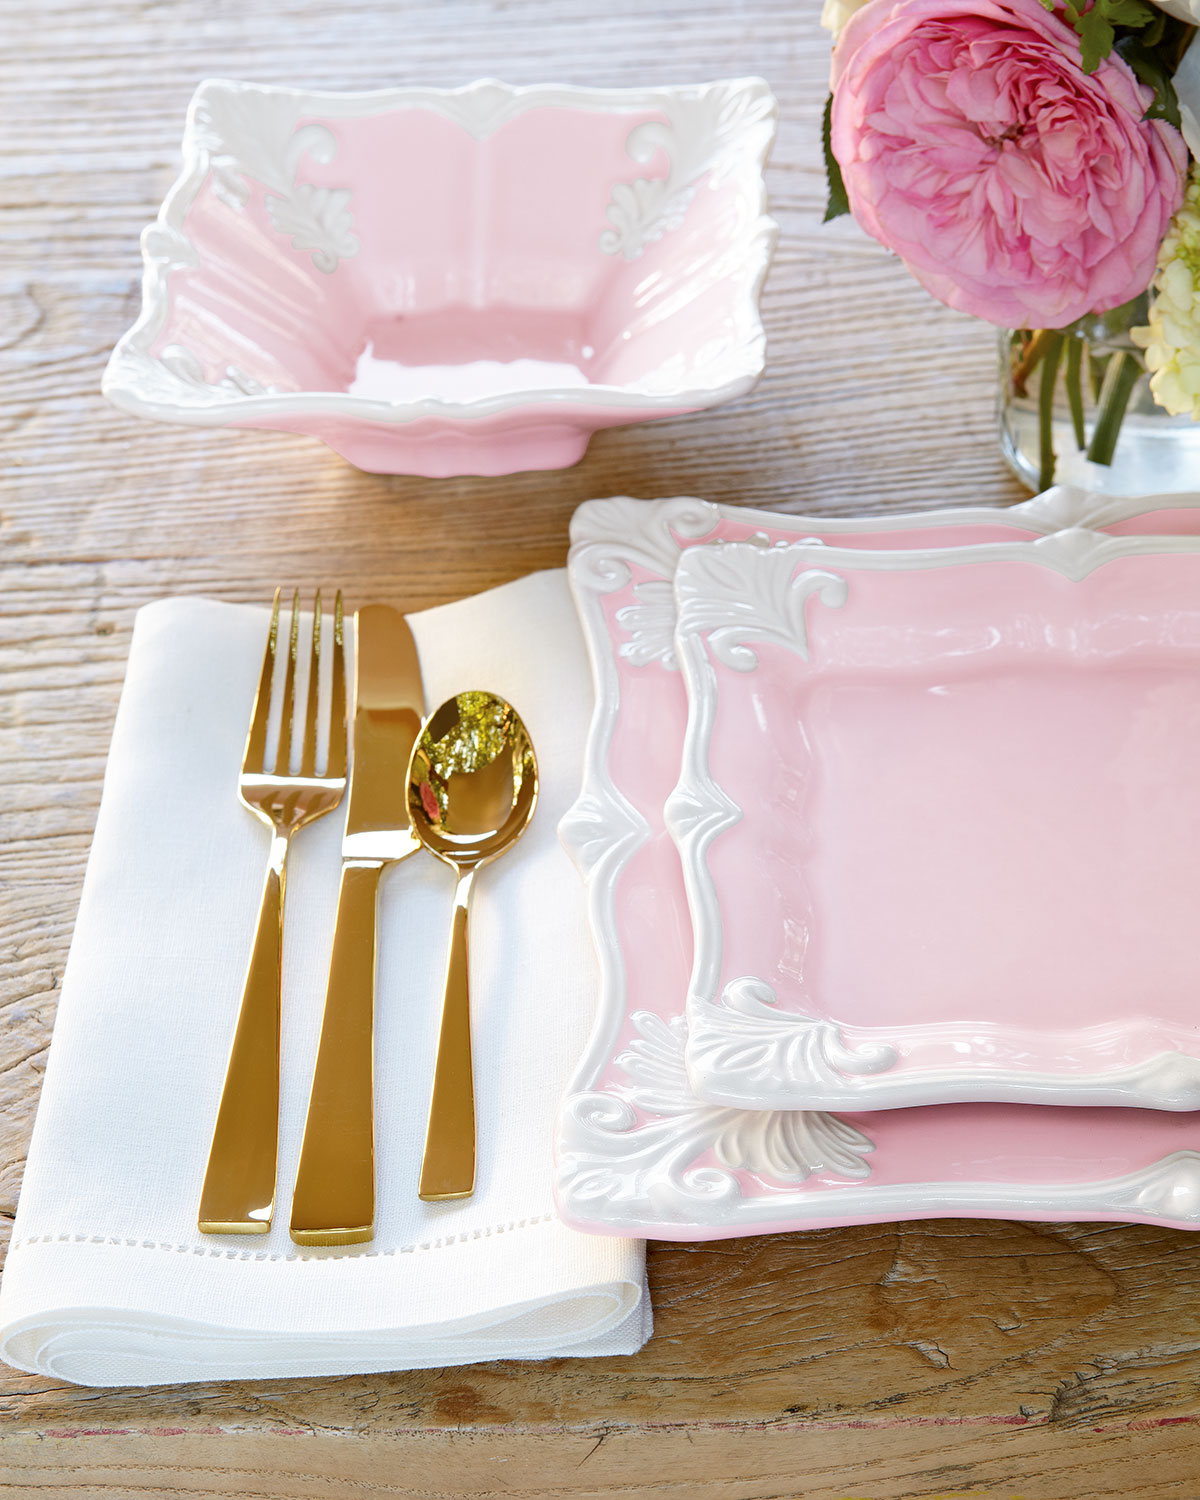 table setting wedding pink and white dinnerware plates dining room gold cutlery fork knives plated girly feminine shop room ideas inspiration how to